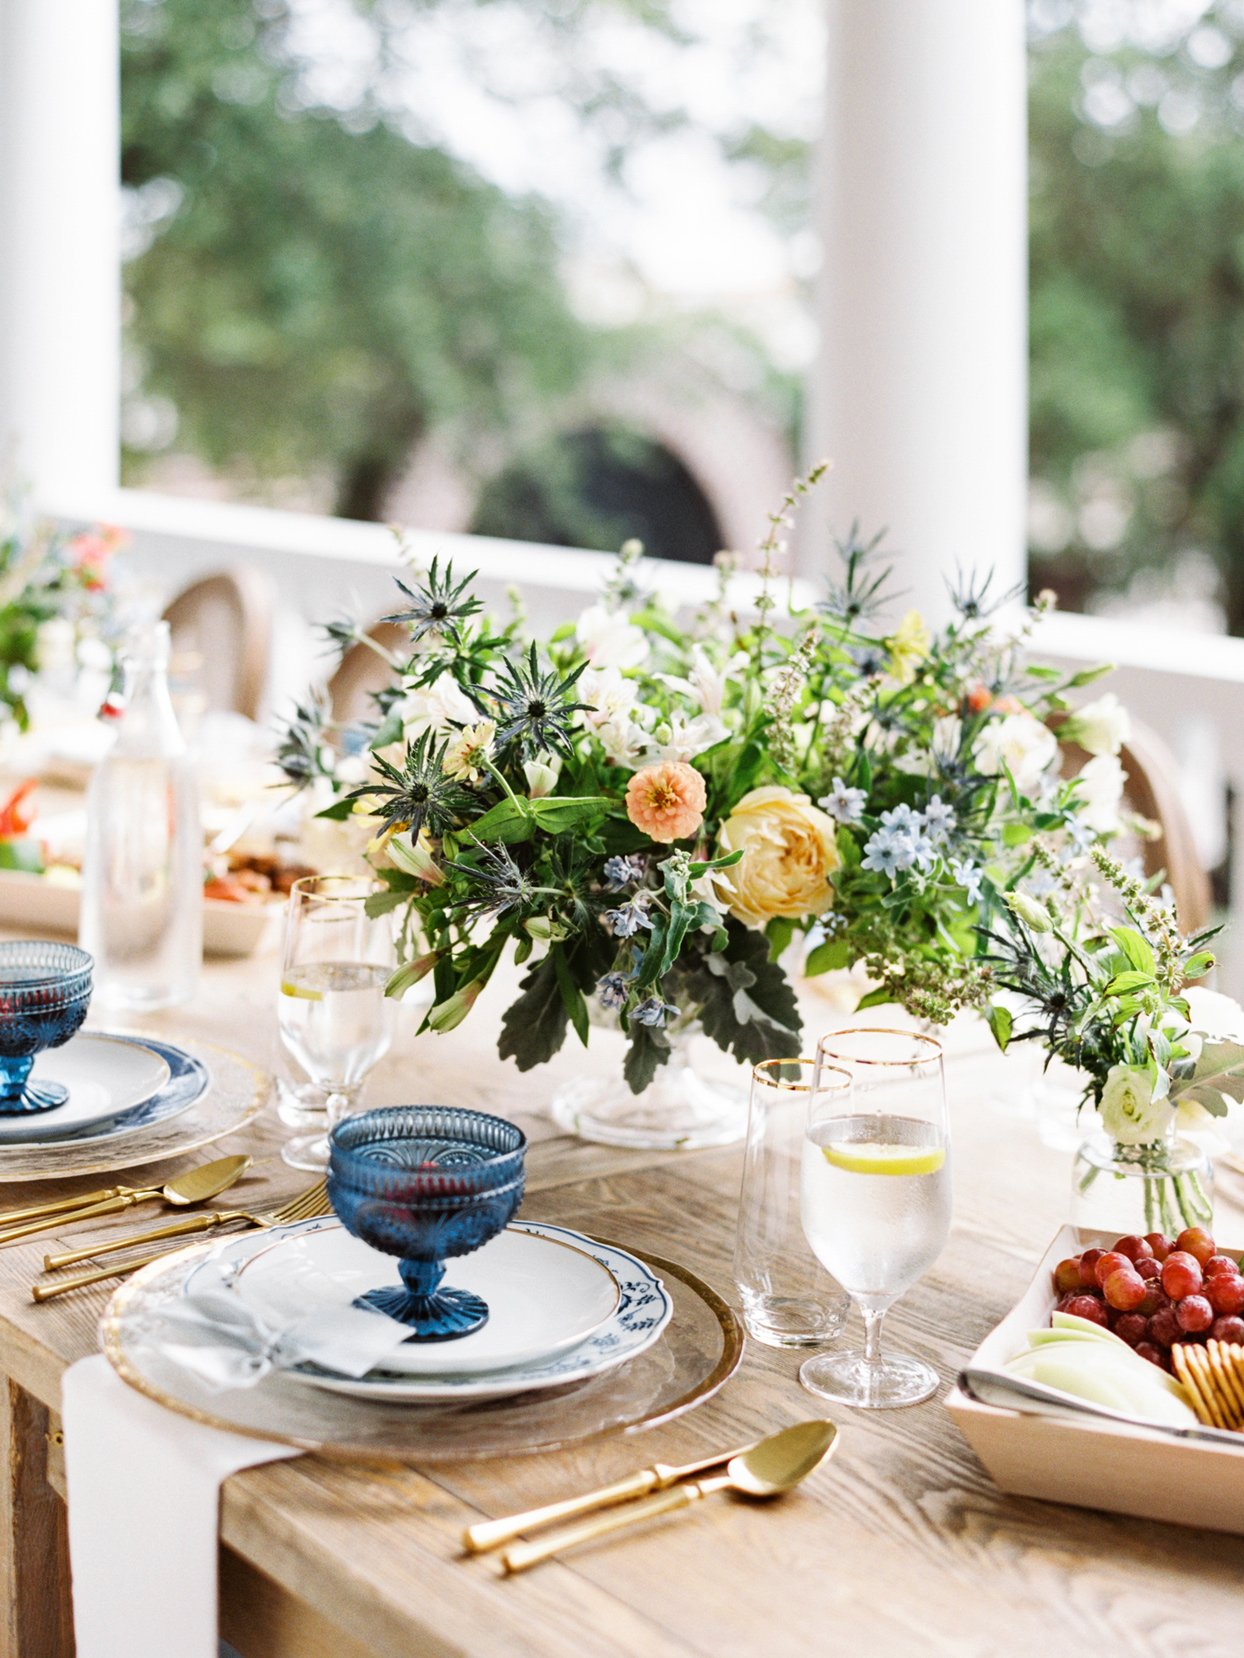 gold and blue place settings with floral centerpieces